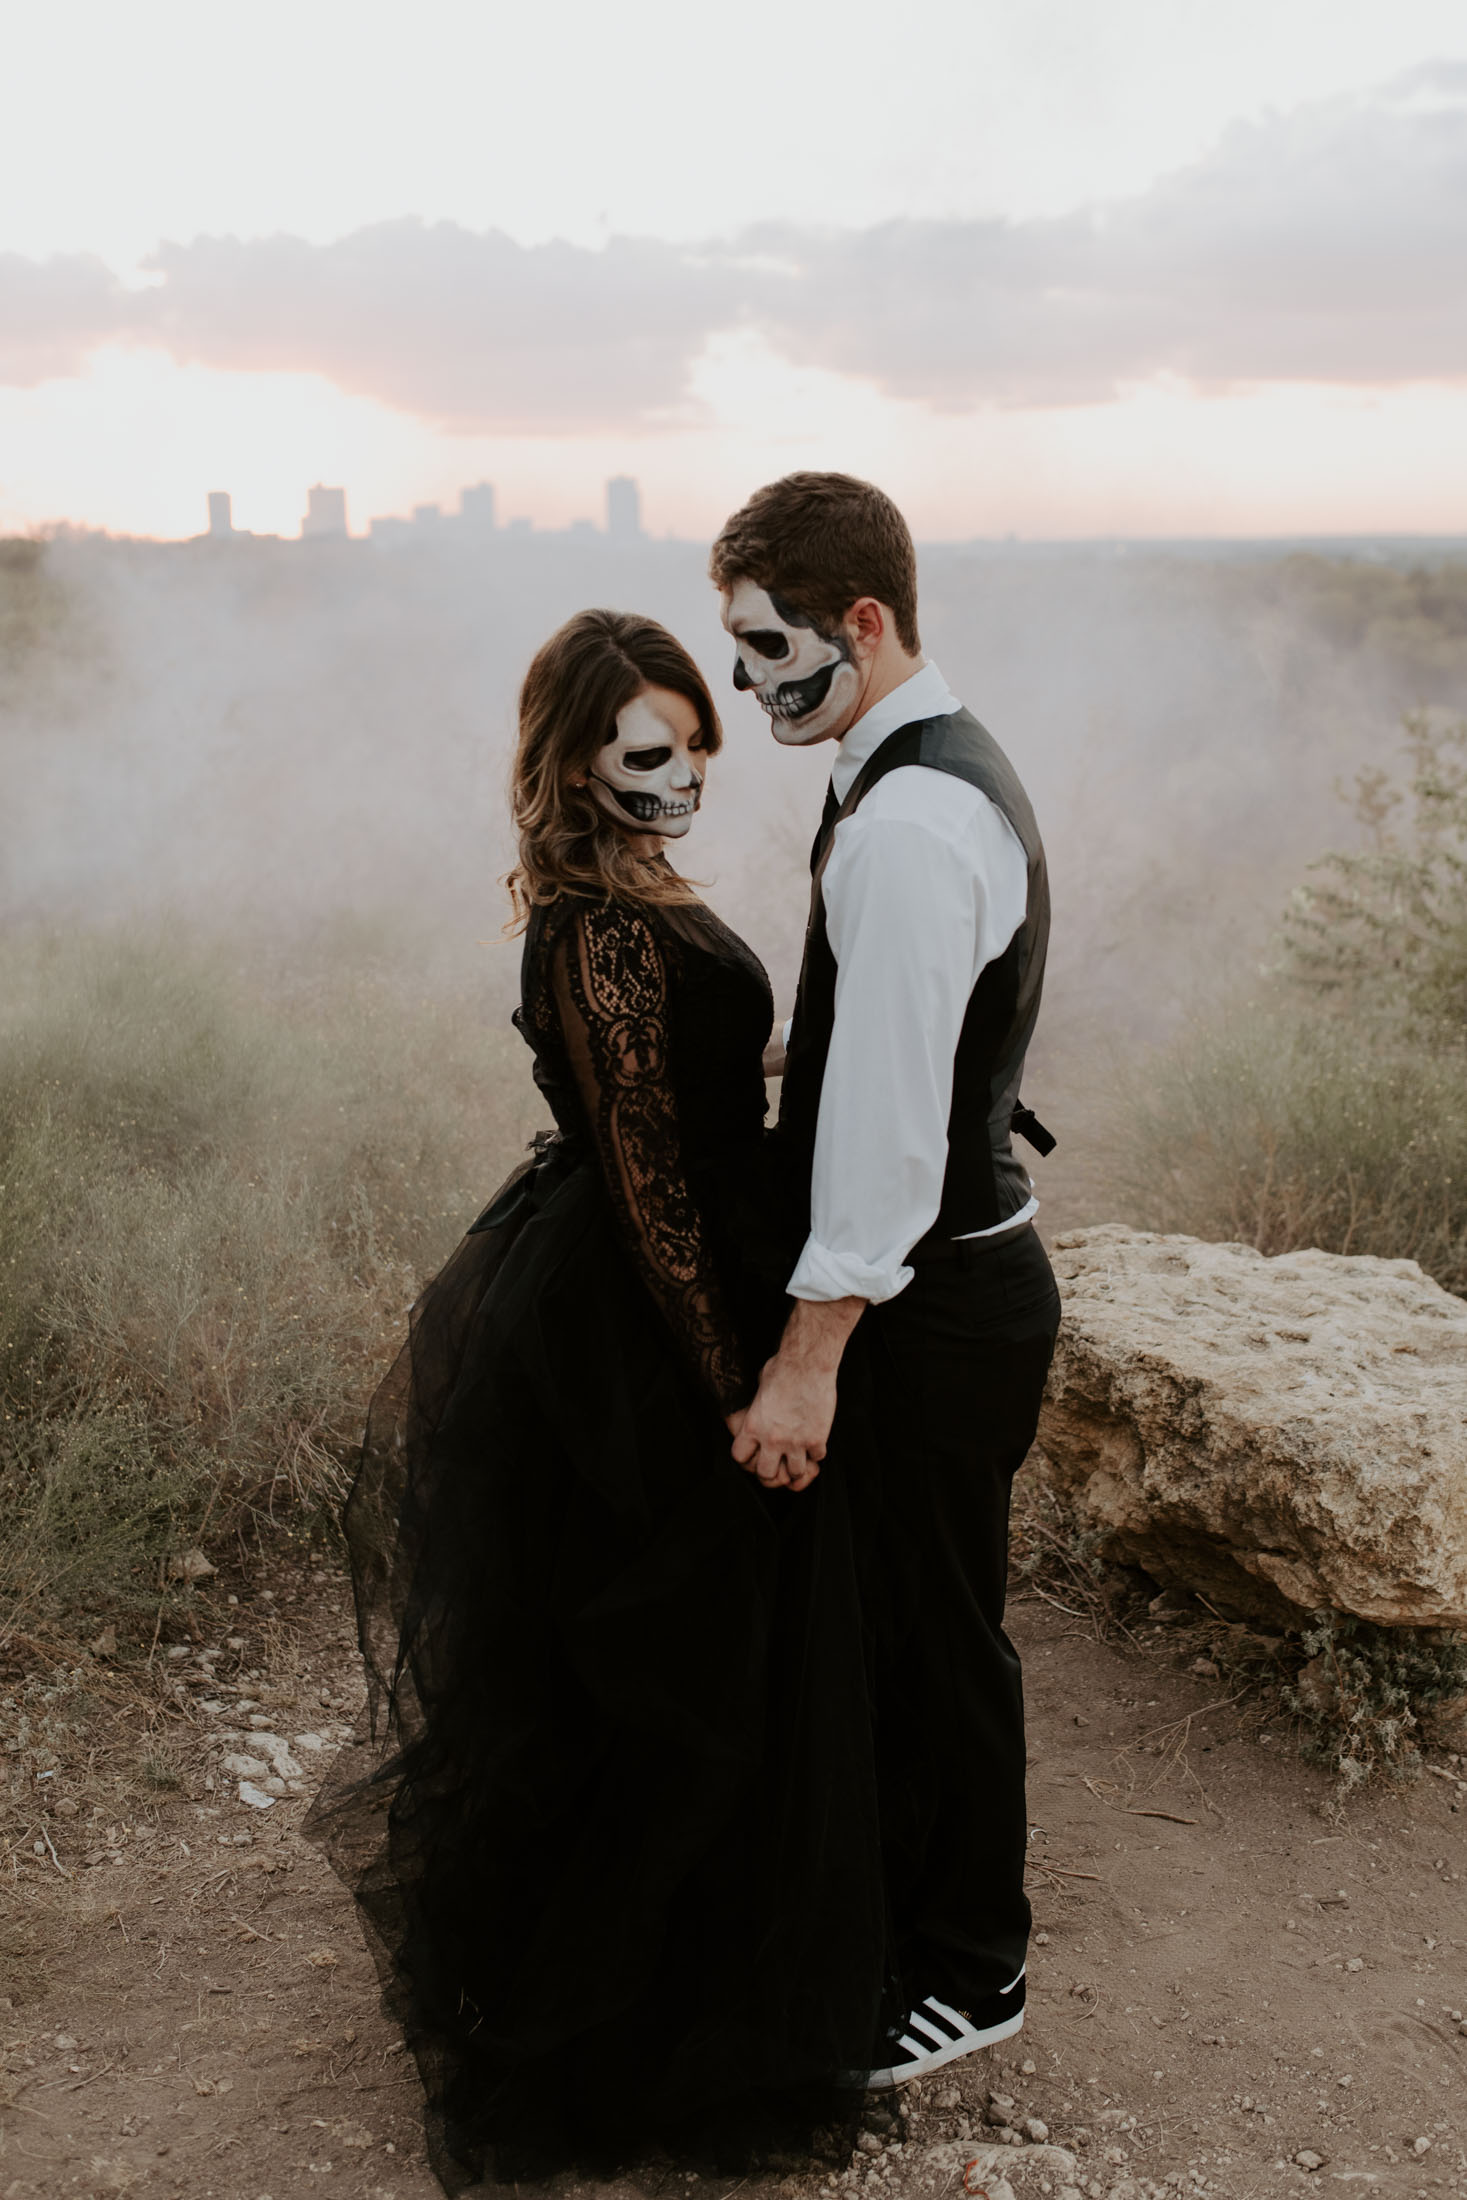 white smoke behind couple with skull makeup for halloween shoot